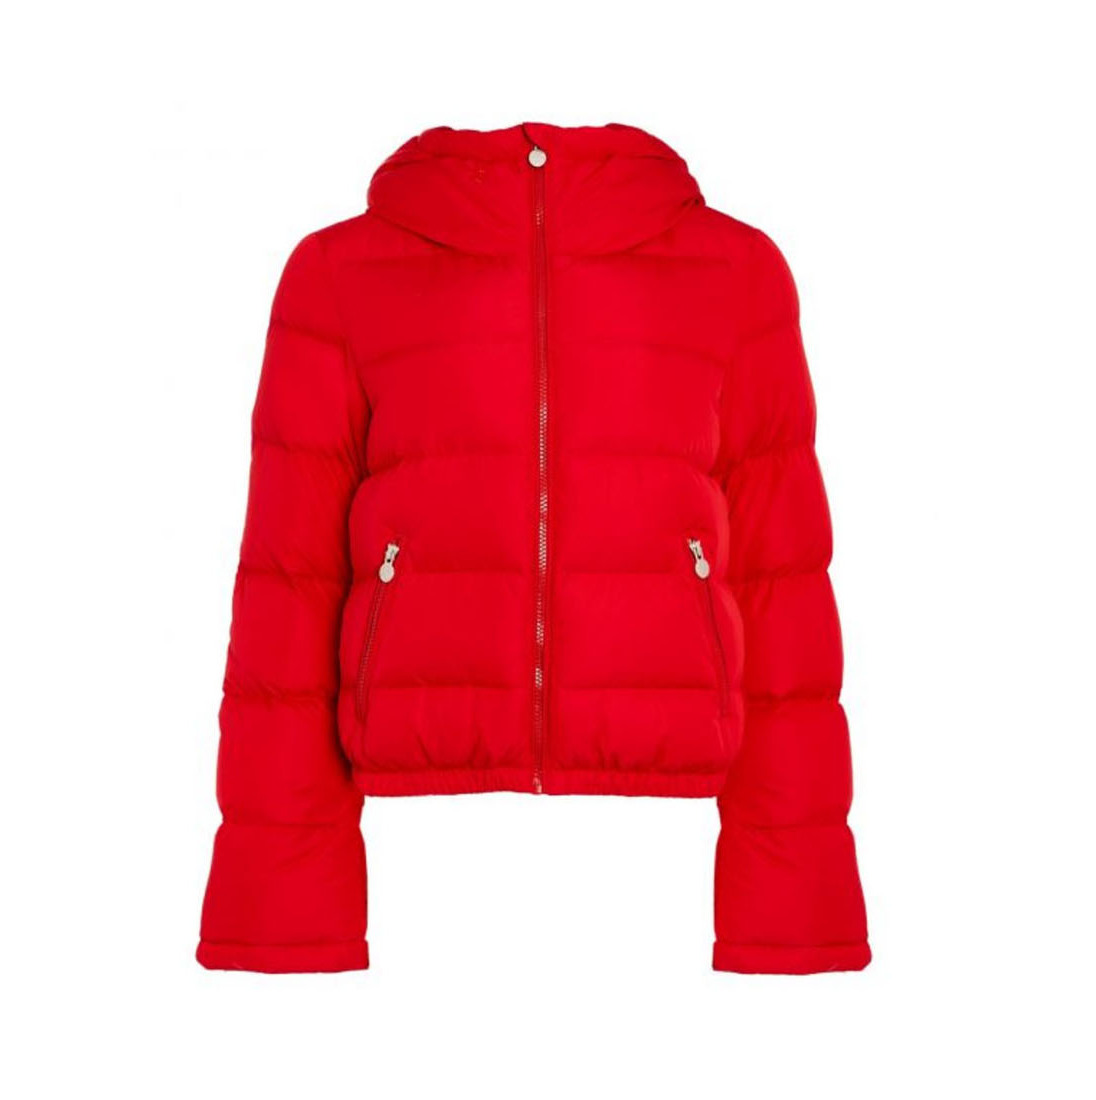 "What could be better than a red puffer jacket for Christmas? This <A href=/tags/0/perfect-moment><strong>Perfect Moment</a></strong> Polar flare jacket is from the same brand that Kate wore when <a href=""https://ca.hellomagazine.com/royalty/02019120453913/kate-middleton-children-christmas-trees-family-action""><strong>she helped children pick out Christmas trees</a></strong>. It's made from high-tech performance fabrics to enhance skiing, plus, it has a slightly cropped shape and flared sleeves for a stylish finish off the slopes.</p><p><a href=""https://www.perfectmoment.com/us/women-146-s-polar-flare-jacket-red"" target=""_blank"">Perfect Moment</a>, $550